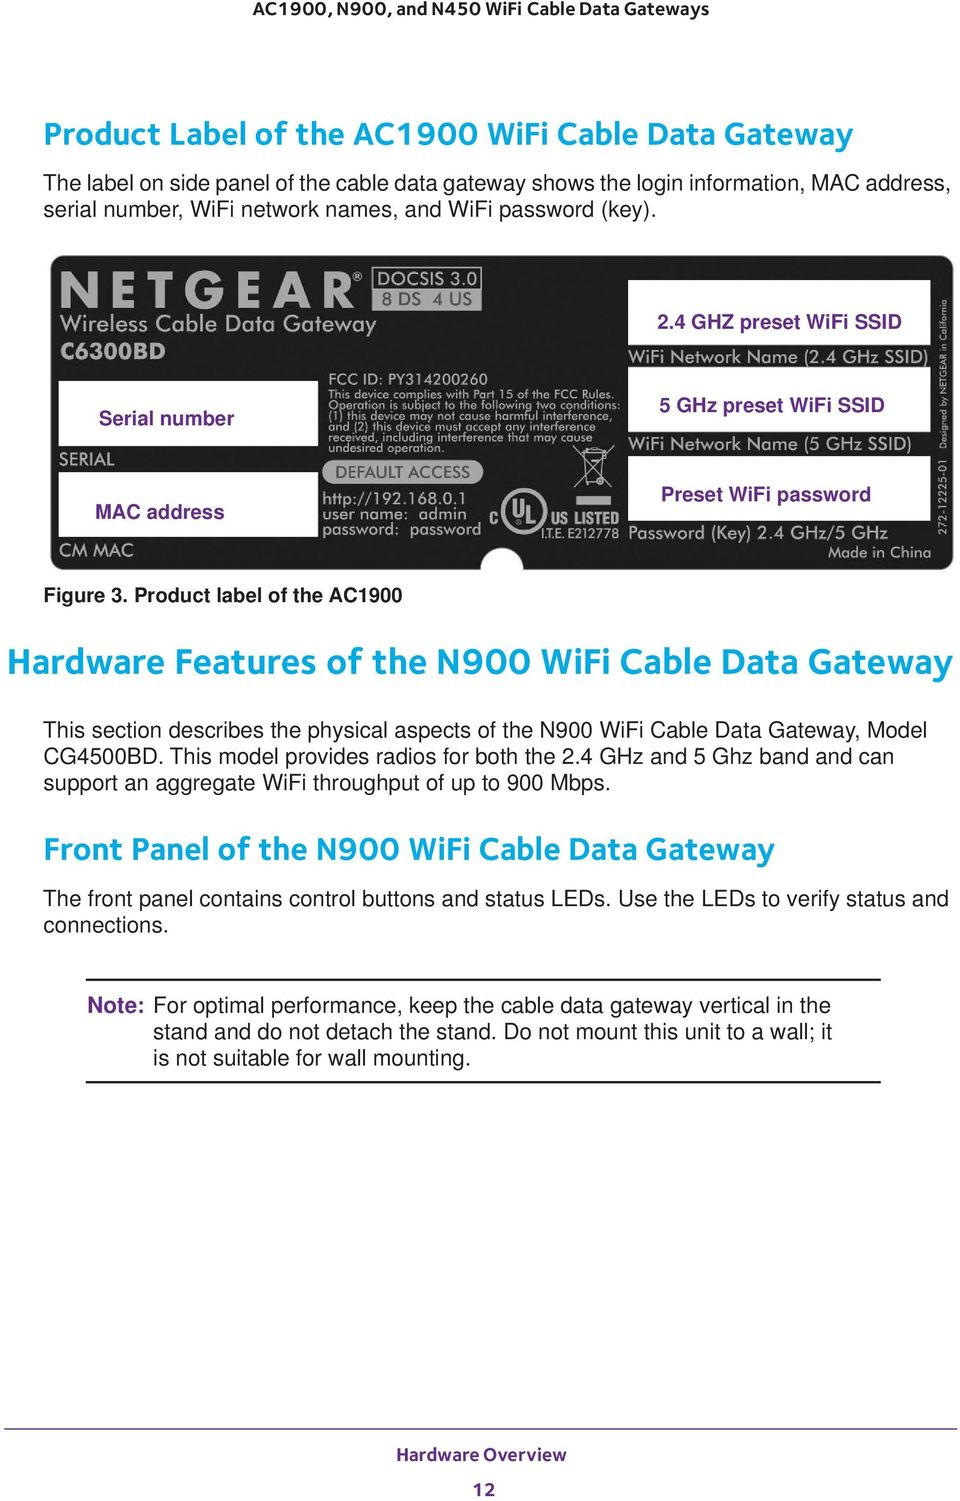 Product label of the AC1900 Hardware Features of the N900 WiFi Cable Data Gateway This section describes the physical aspects of the N900 WiFi Cable Data Gateway, Model CG4500BD.